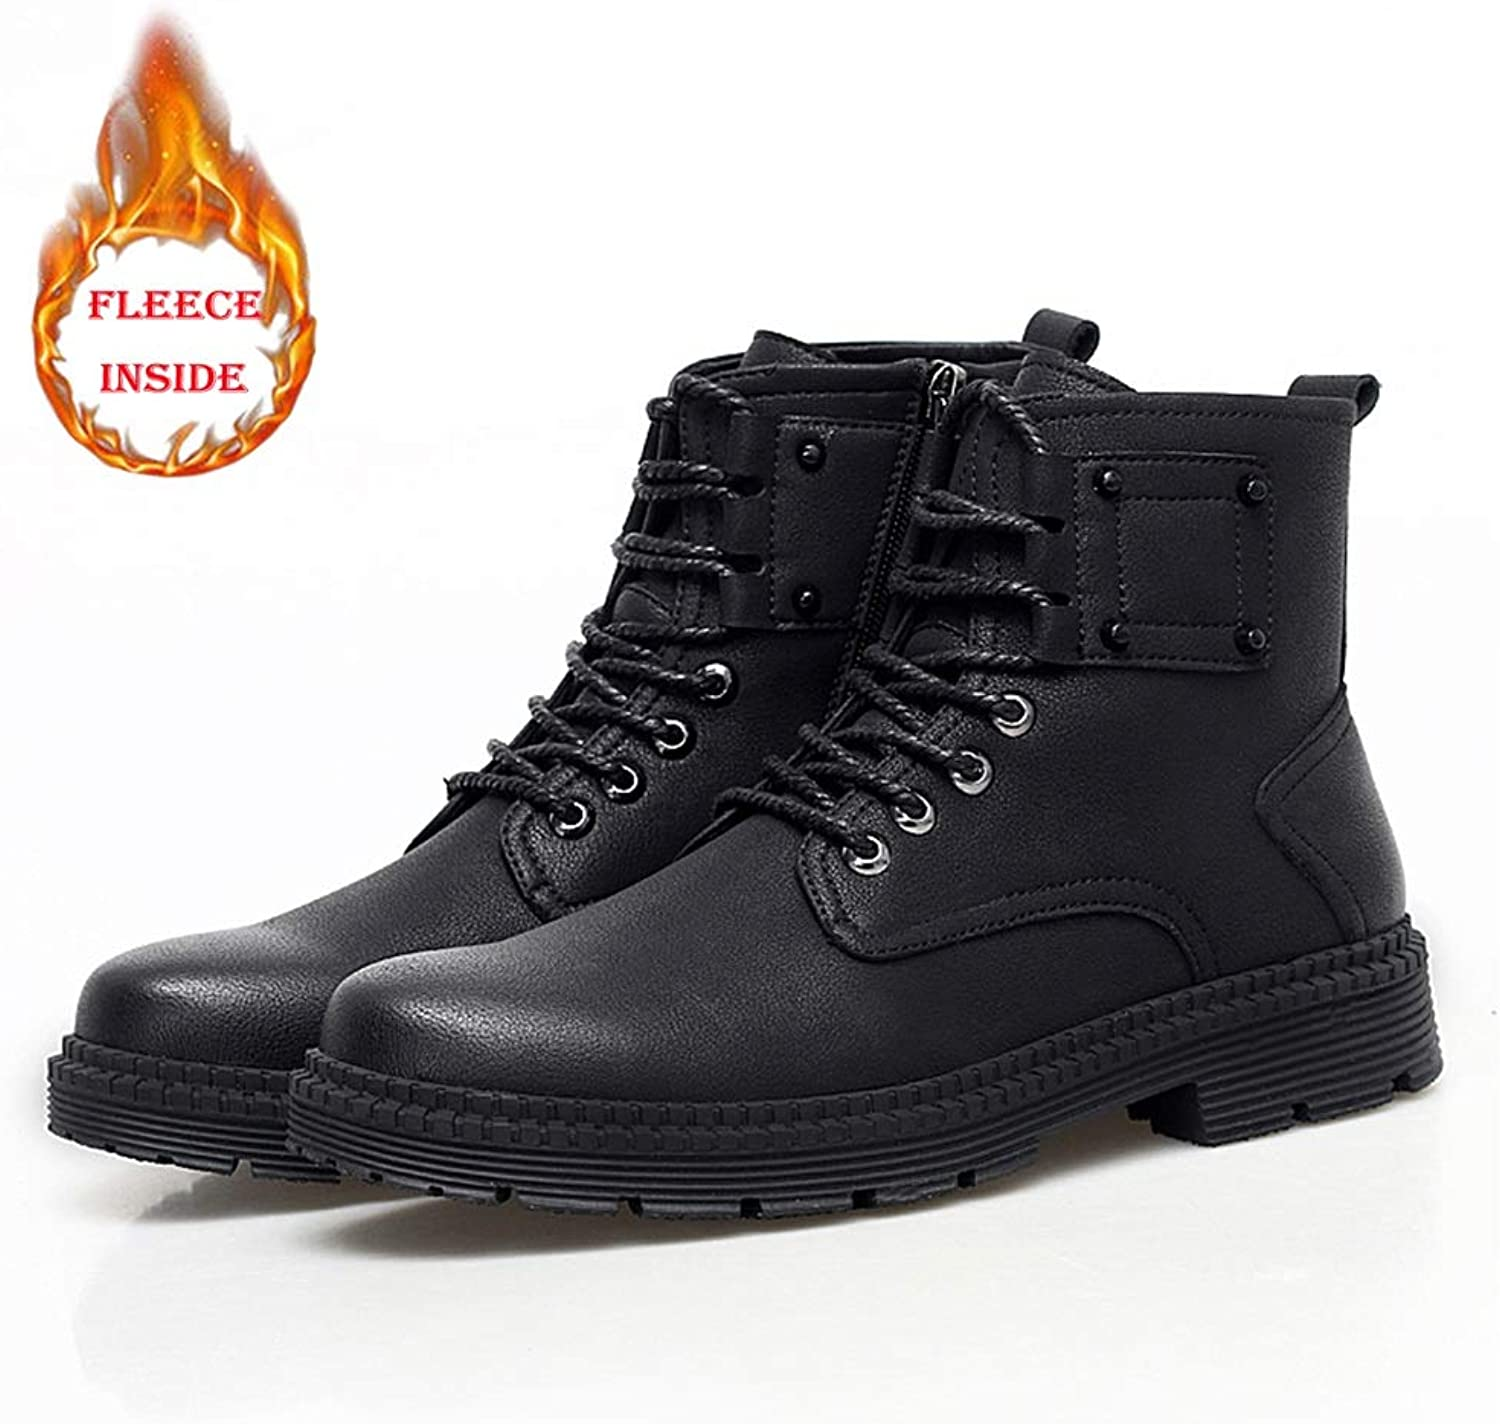 Xujw-shoes Men's Winter Faux Fleece Inside Warm Fashion Boots for Casual and Comfort British Style High Top Boot(Conventional Optional)